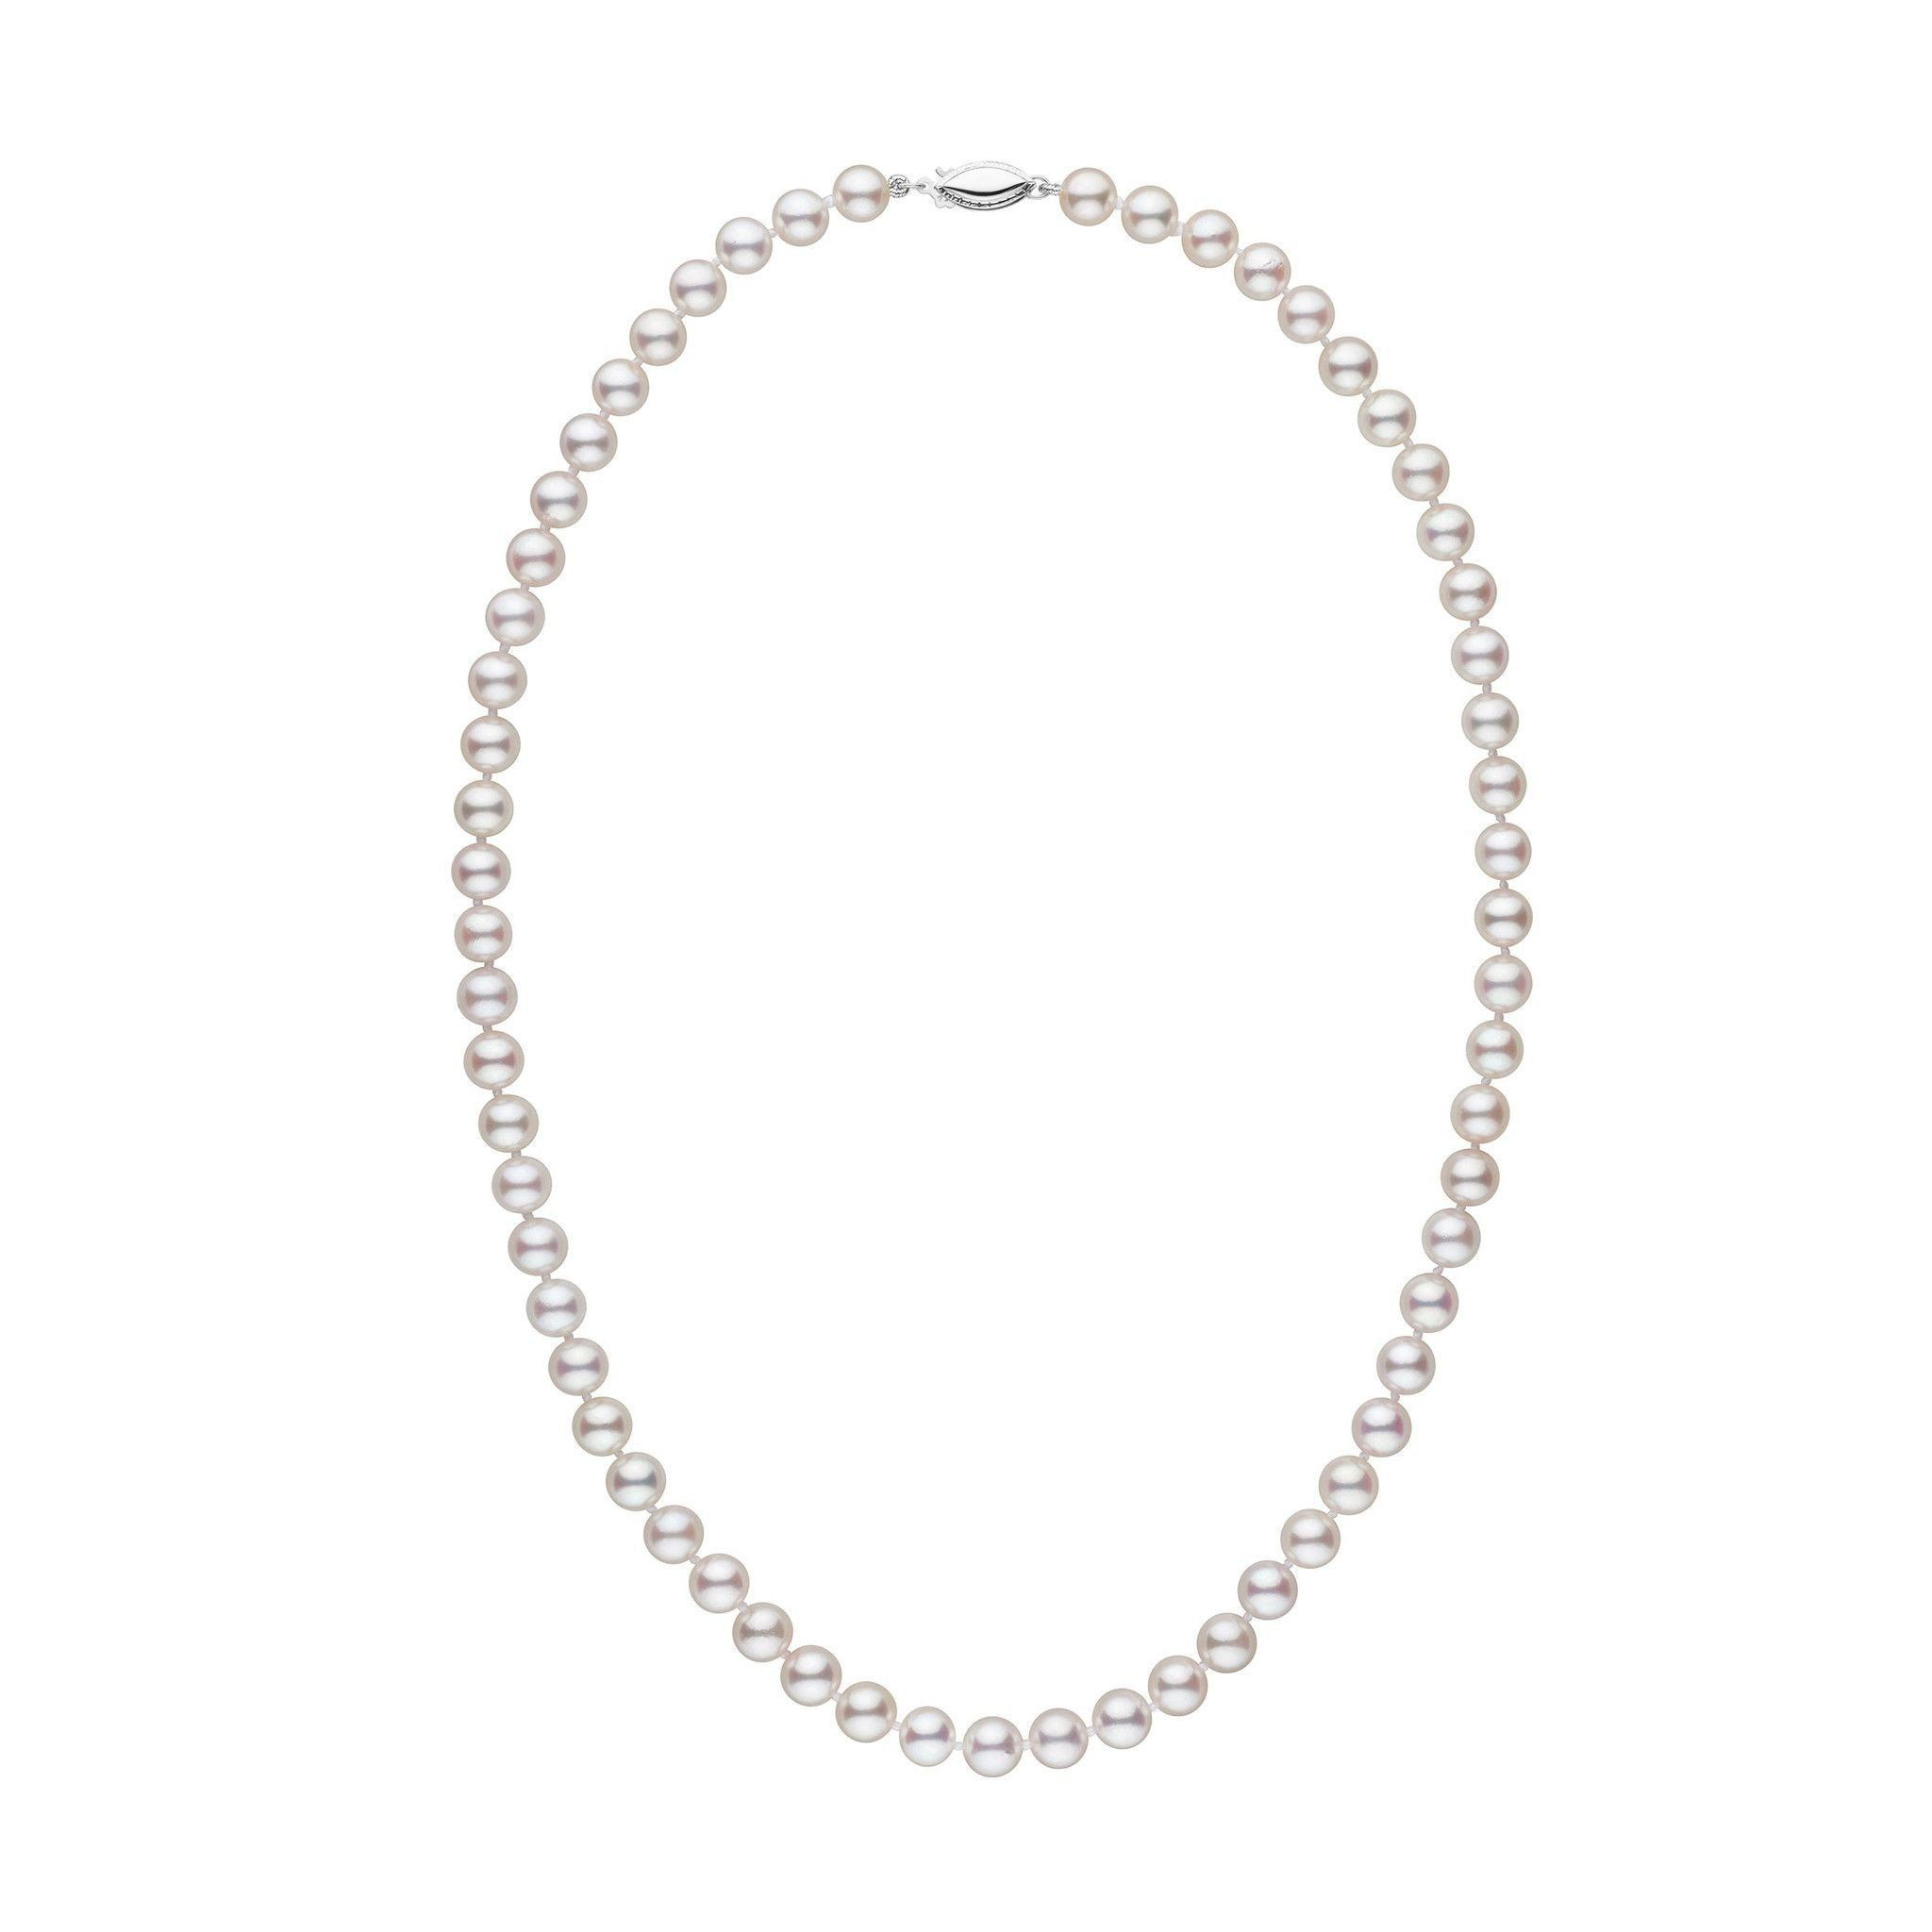 6.5-7.0 mm 18 Inch AAA White Akoya Pearl Necklace